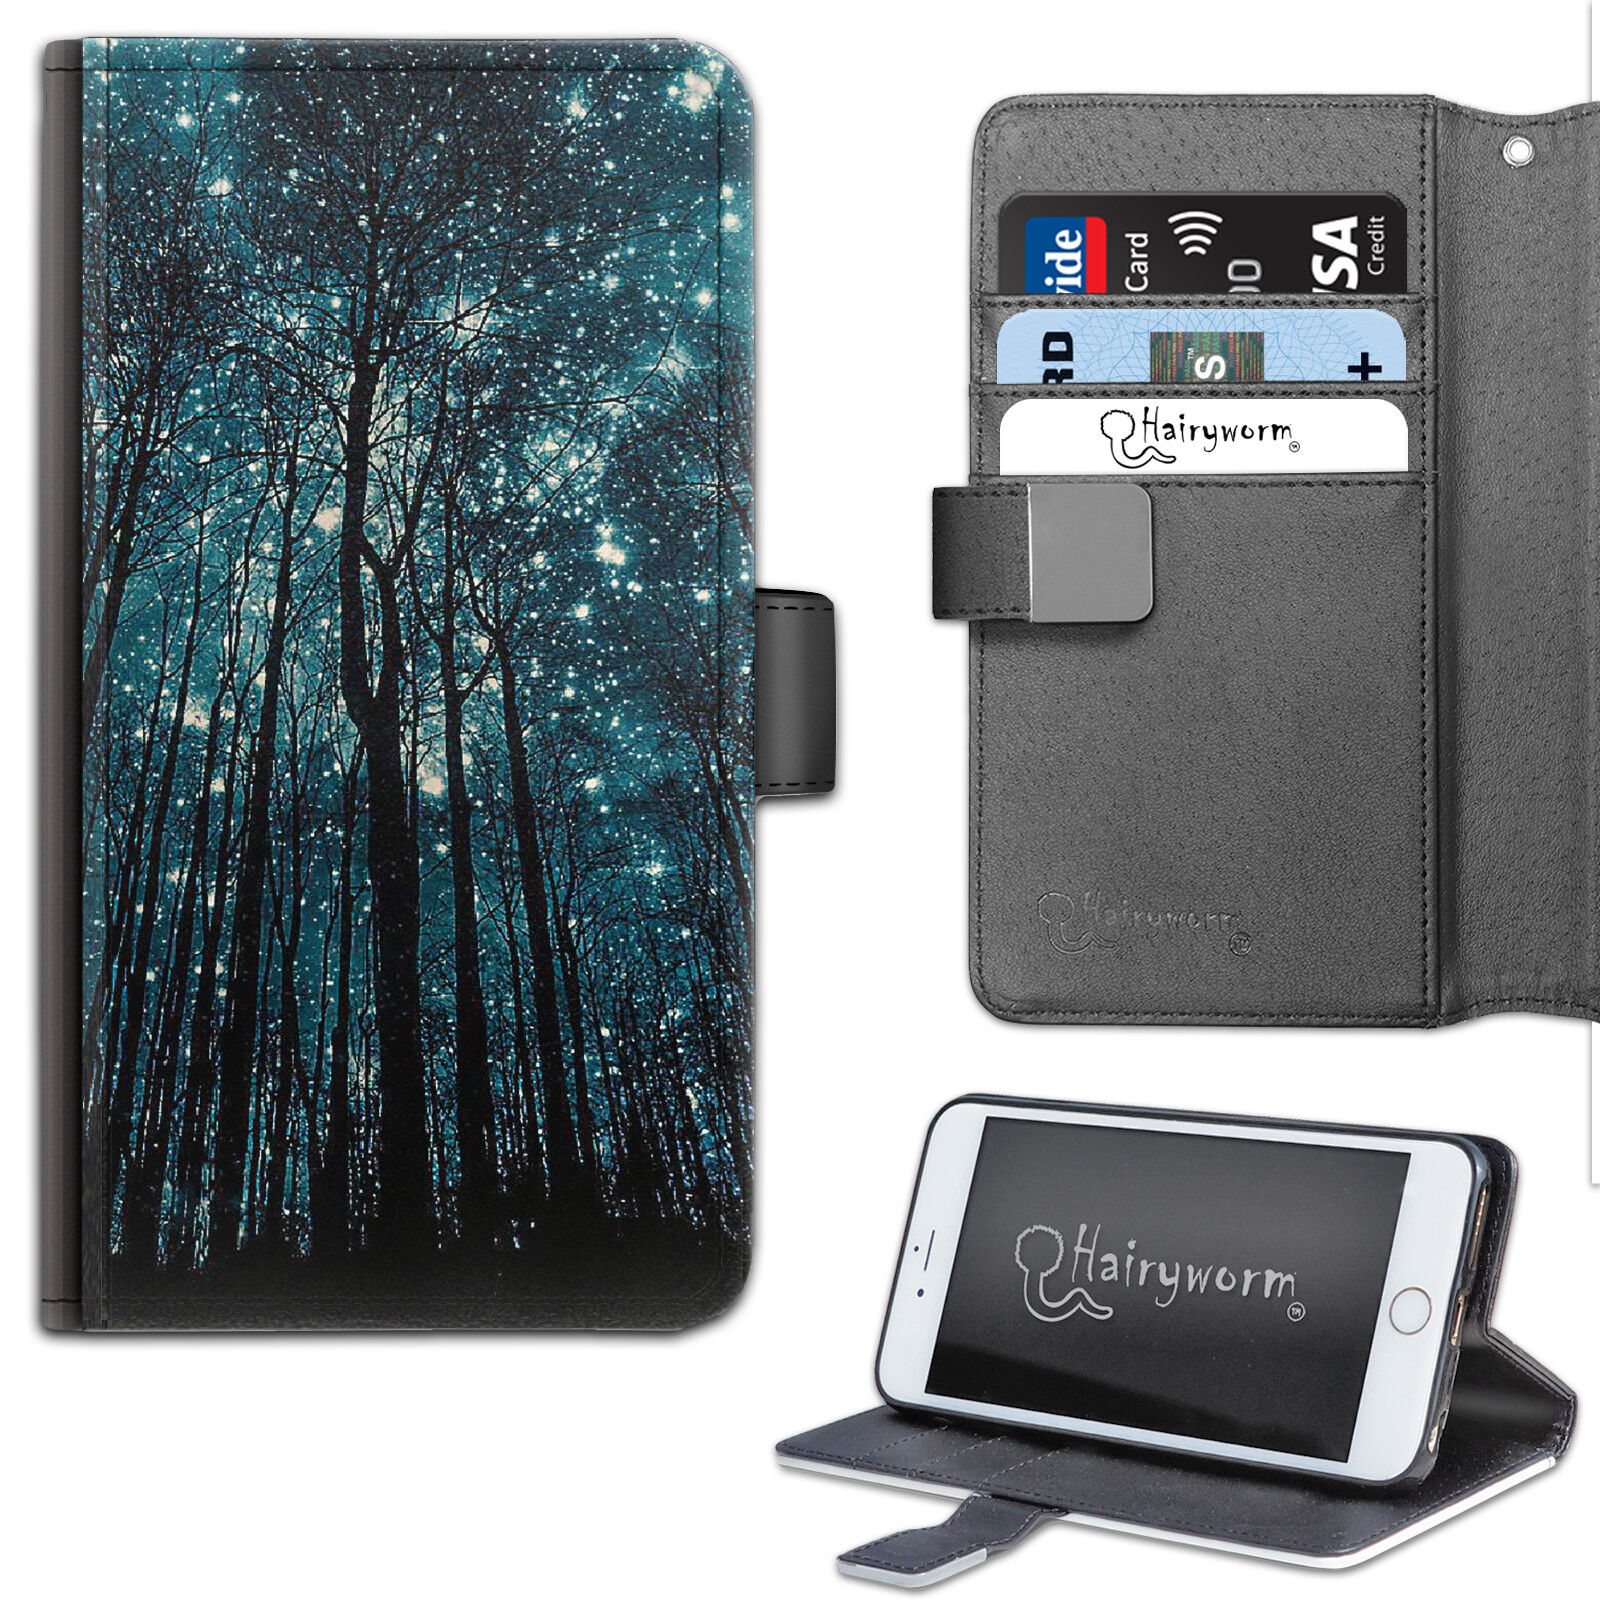 Details about HAIRYWORM TREES AND STARRY GALAXY NIGHT SKY LEATHER WALLET  PHONE CASE, FLIP CASE